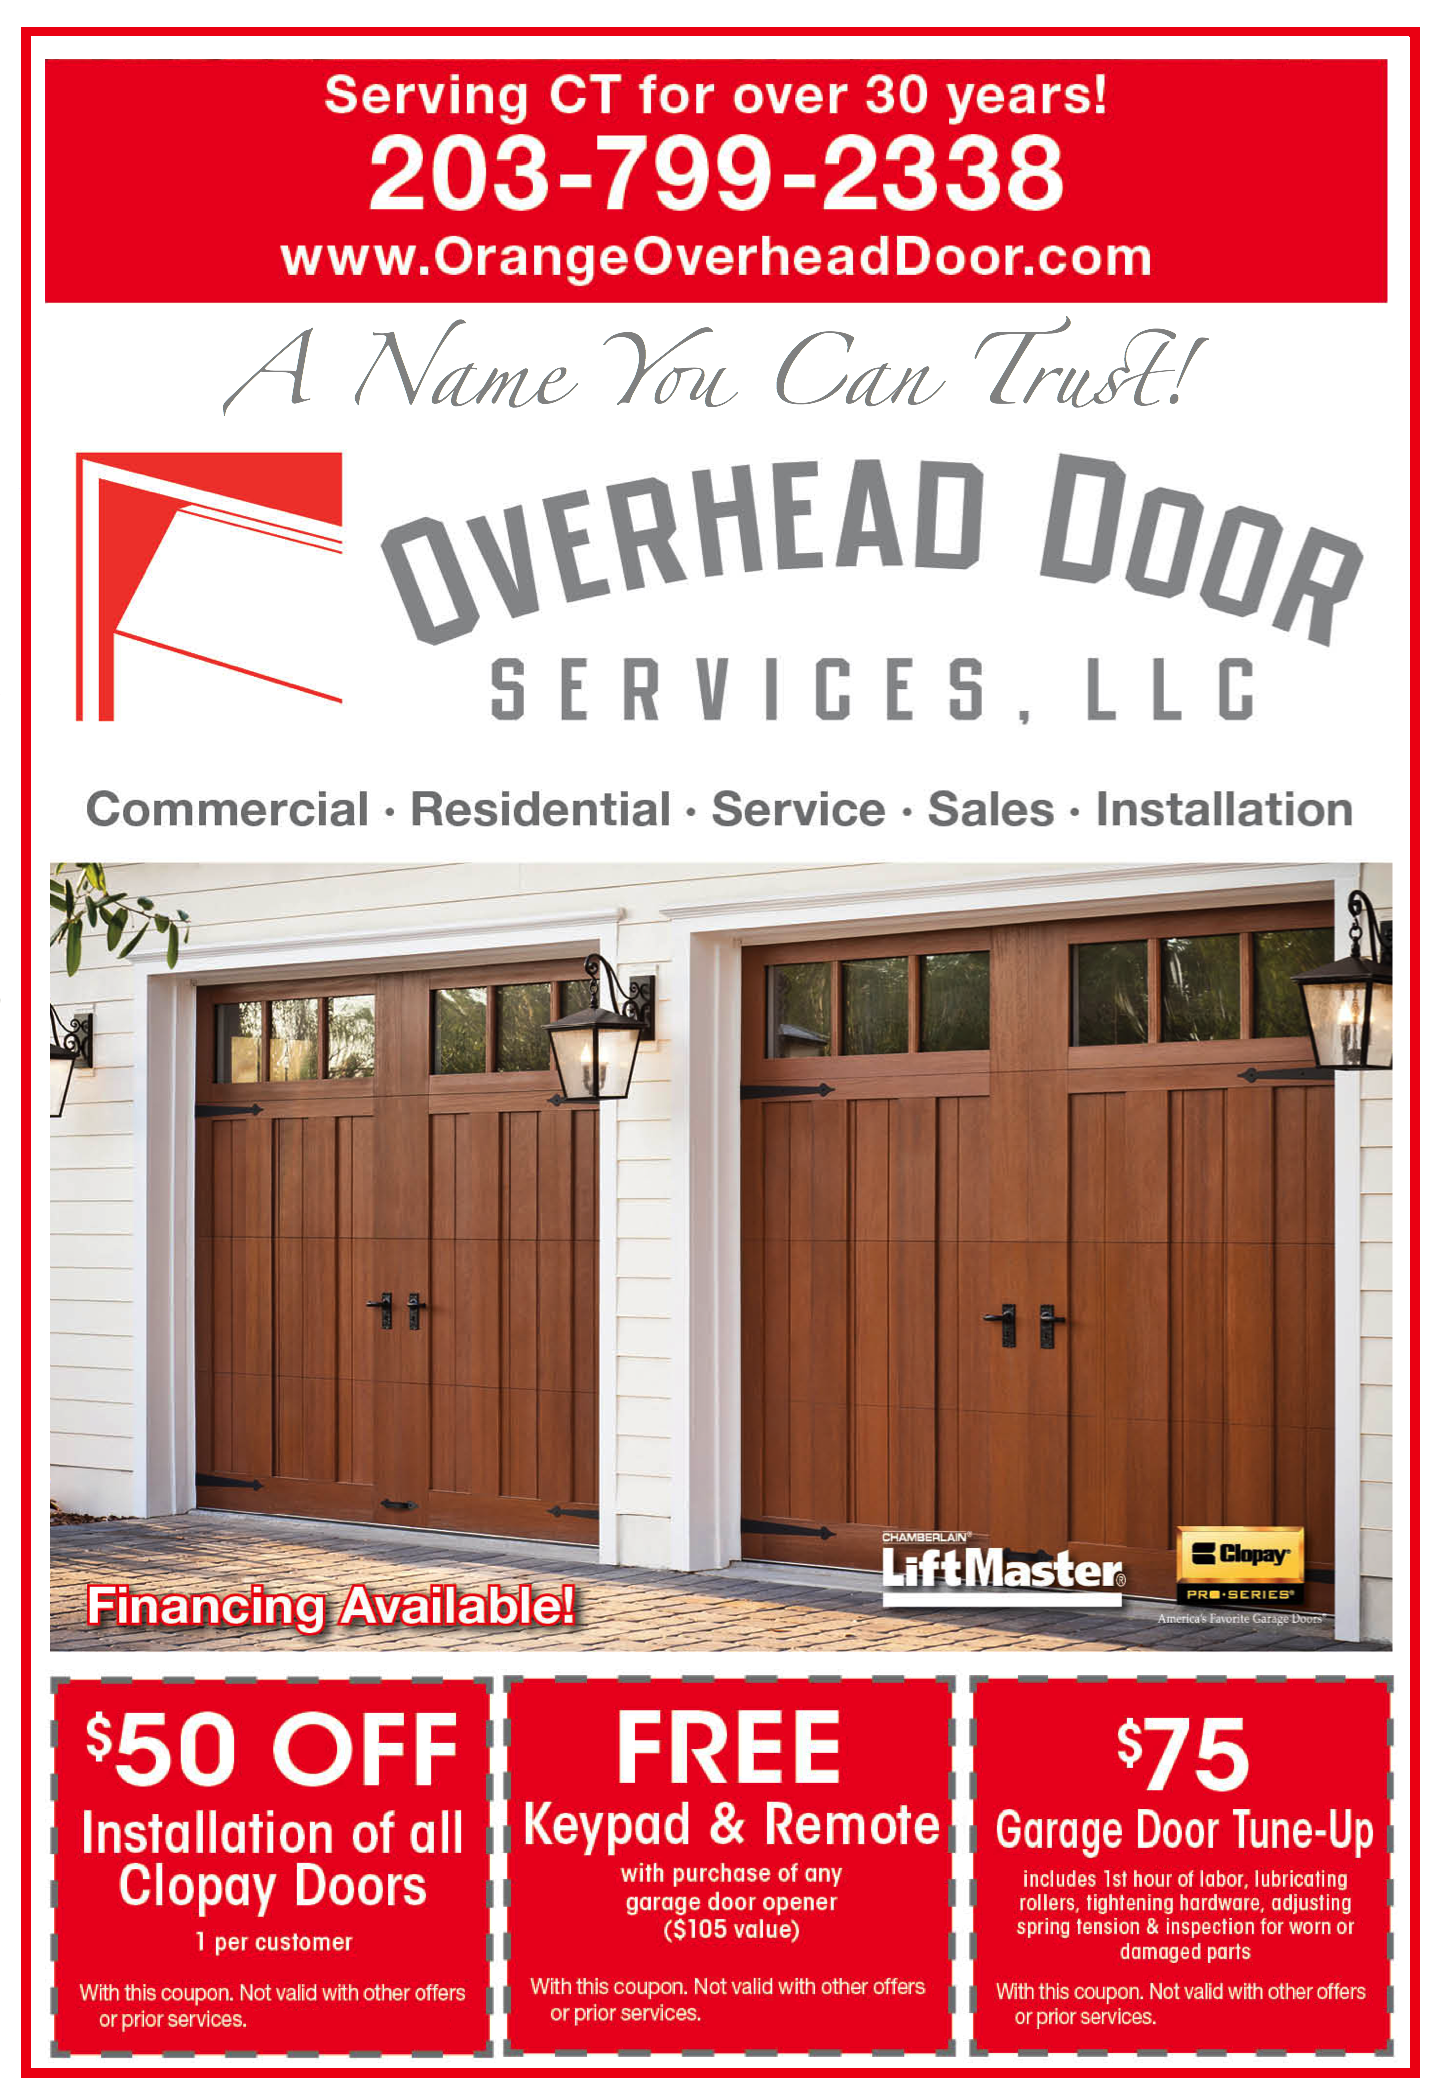 Overhead Door Services - Specials